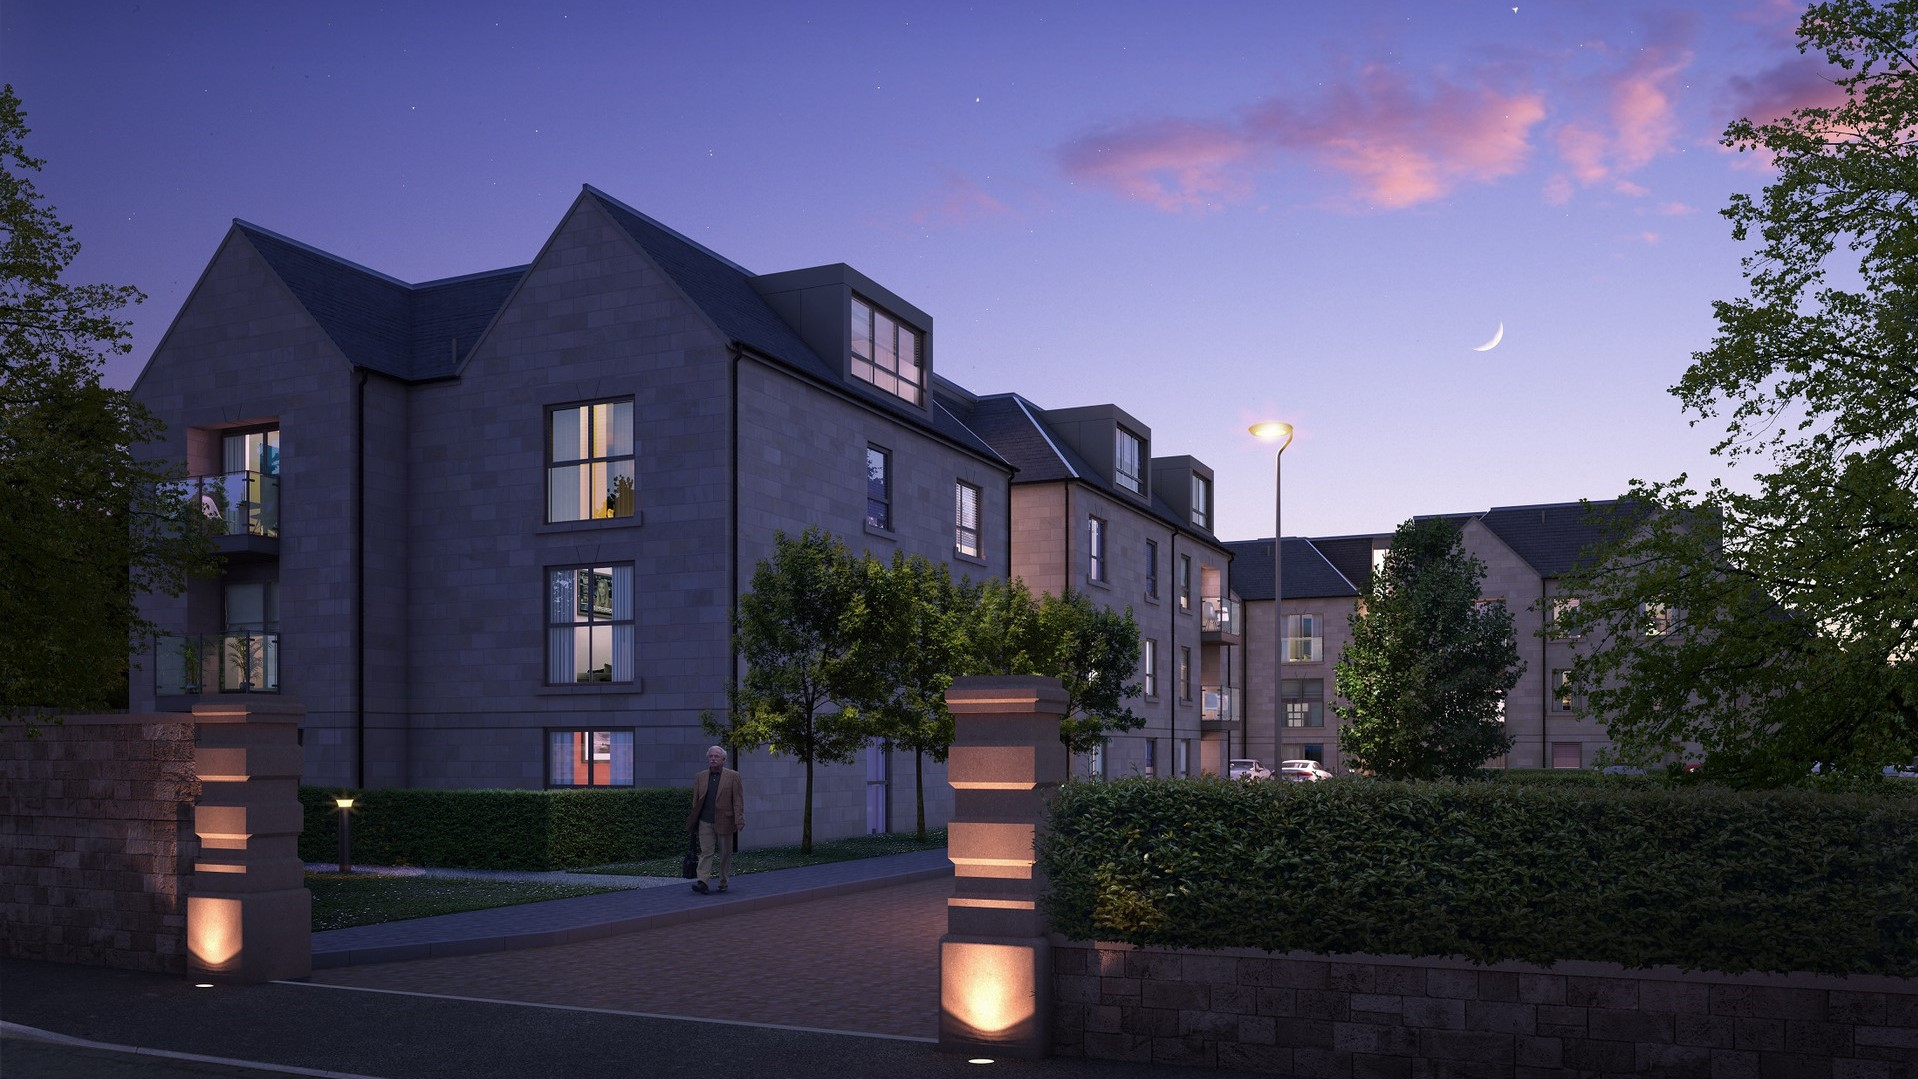 2020 Scottish Home Awards FInalist, Apartments at The Avenues, Glasgow